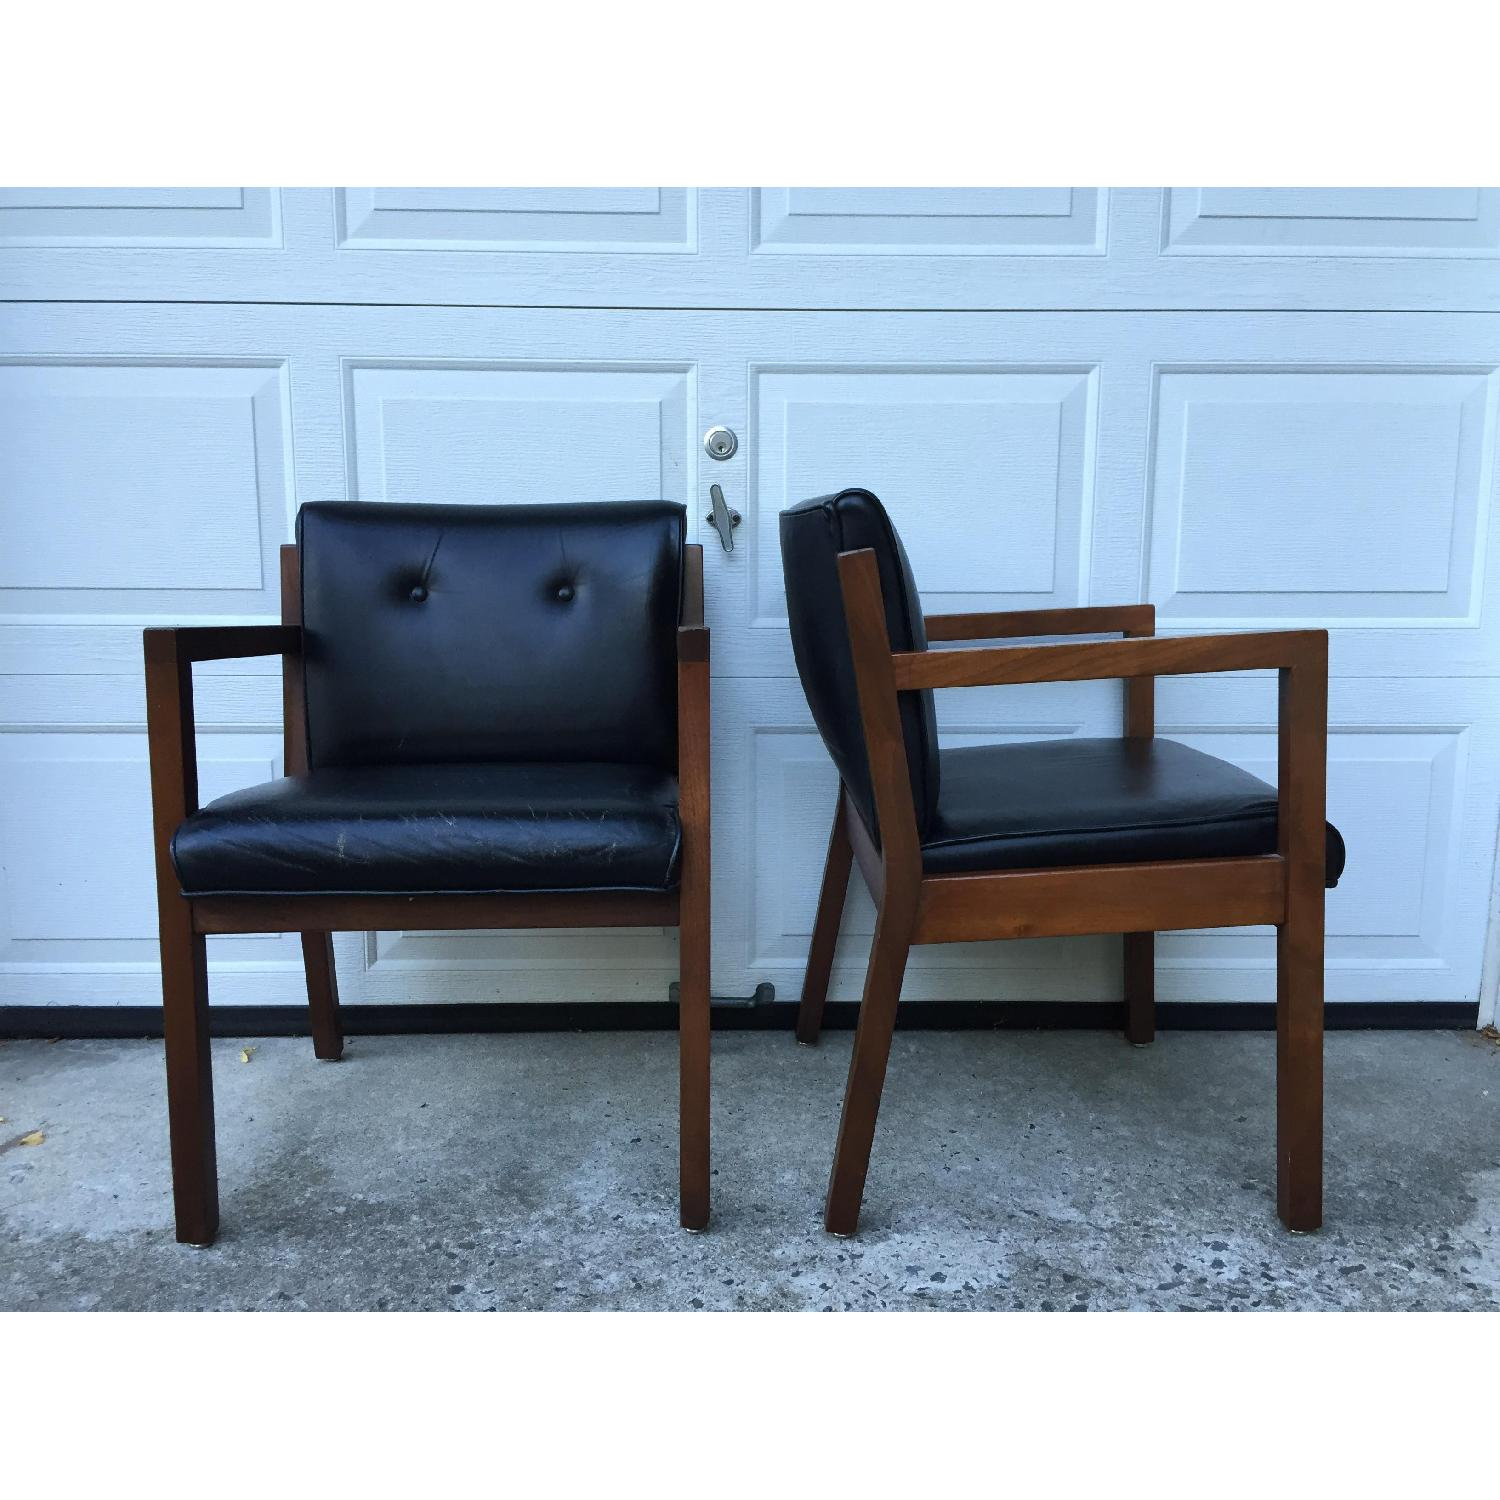 Jasper Chair Company Mid Century Modern Walnut Frame Chairs - Pair - image-4